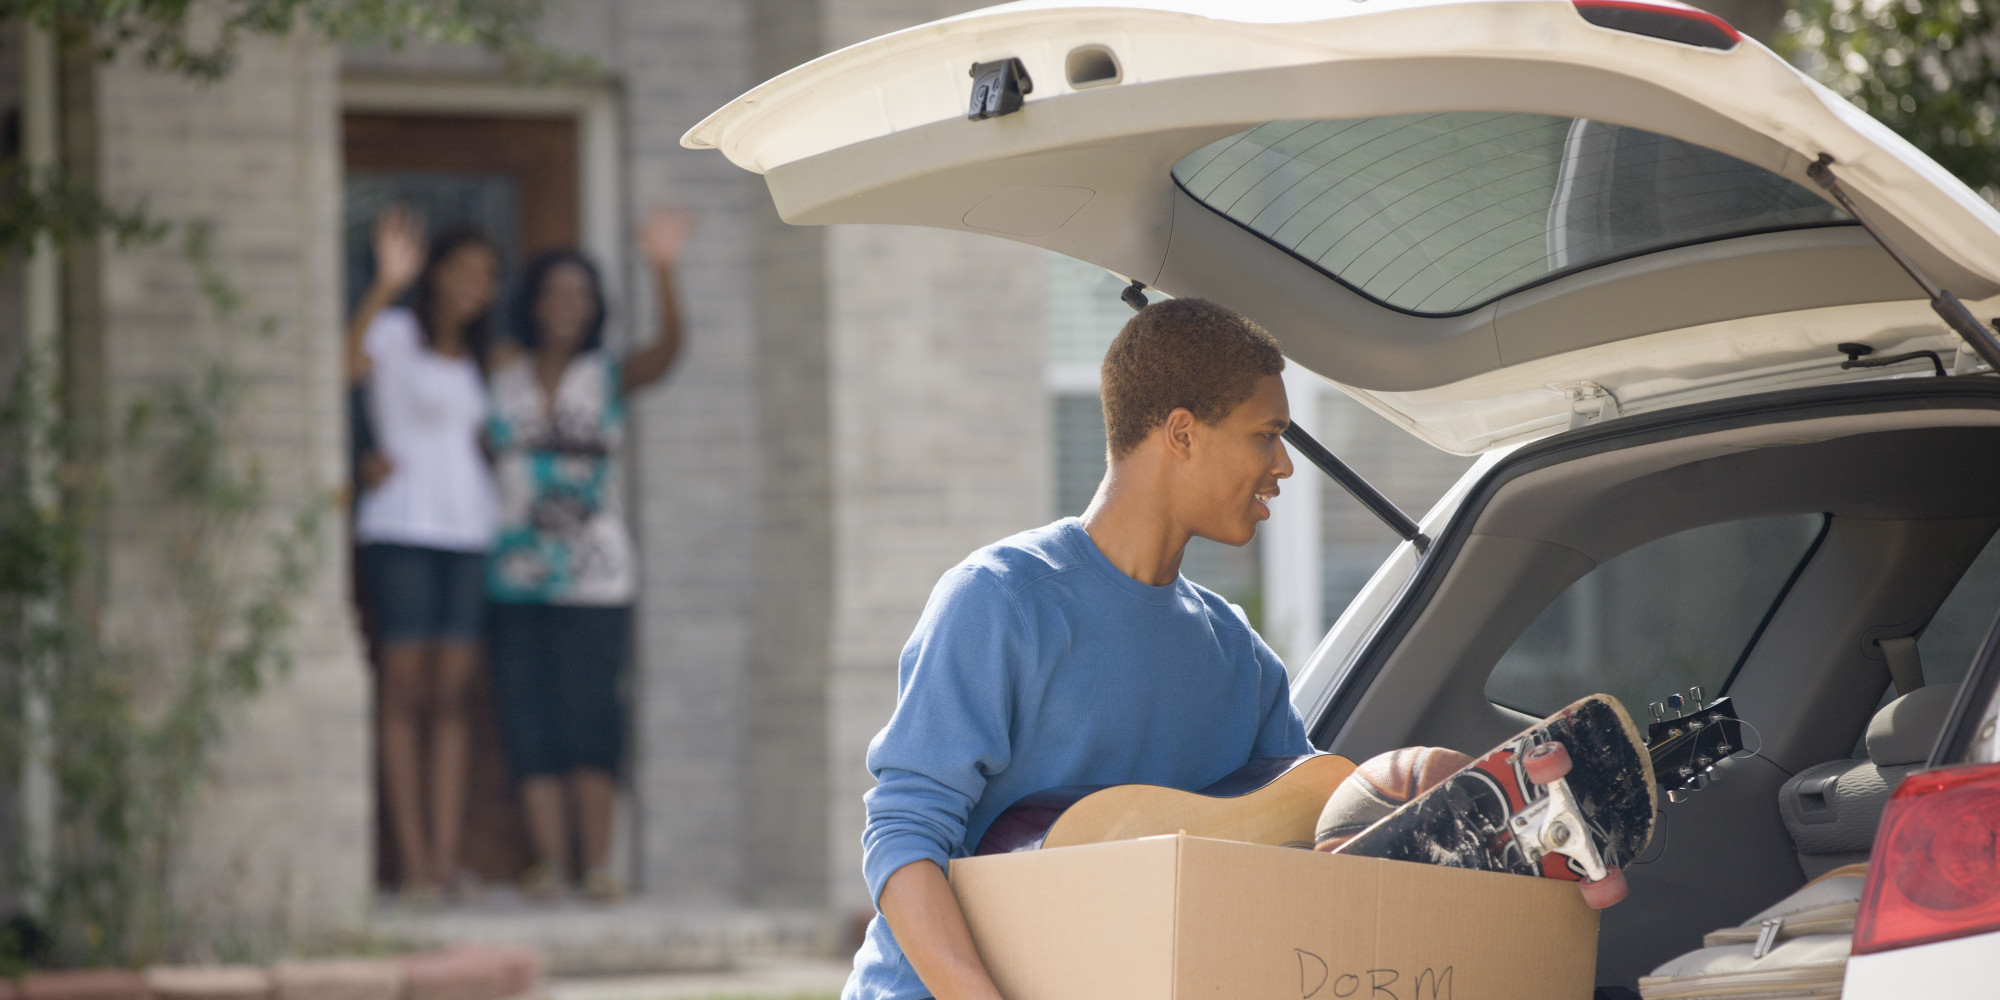 moving out Get your moving truck from penske truck rental we have great rates on truck rentals at over 2,200 rental locations to serve all of your moving truck needs.